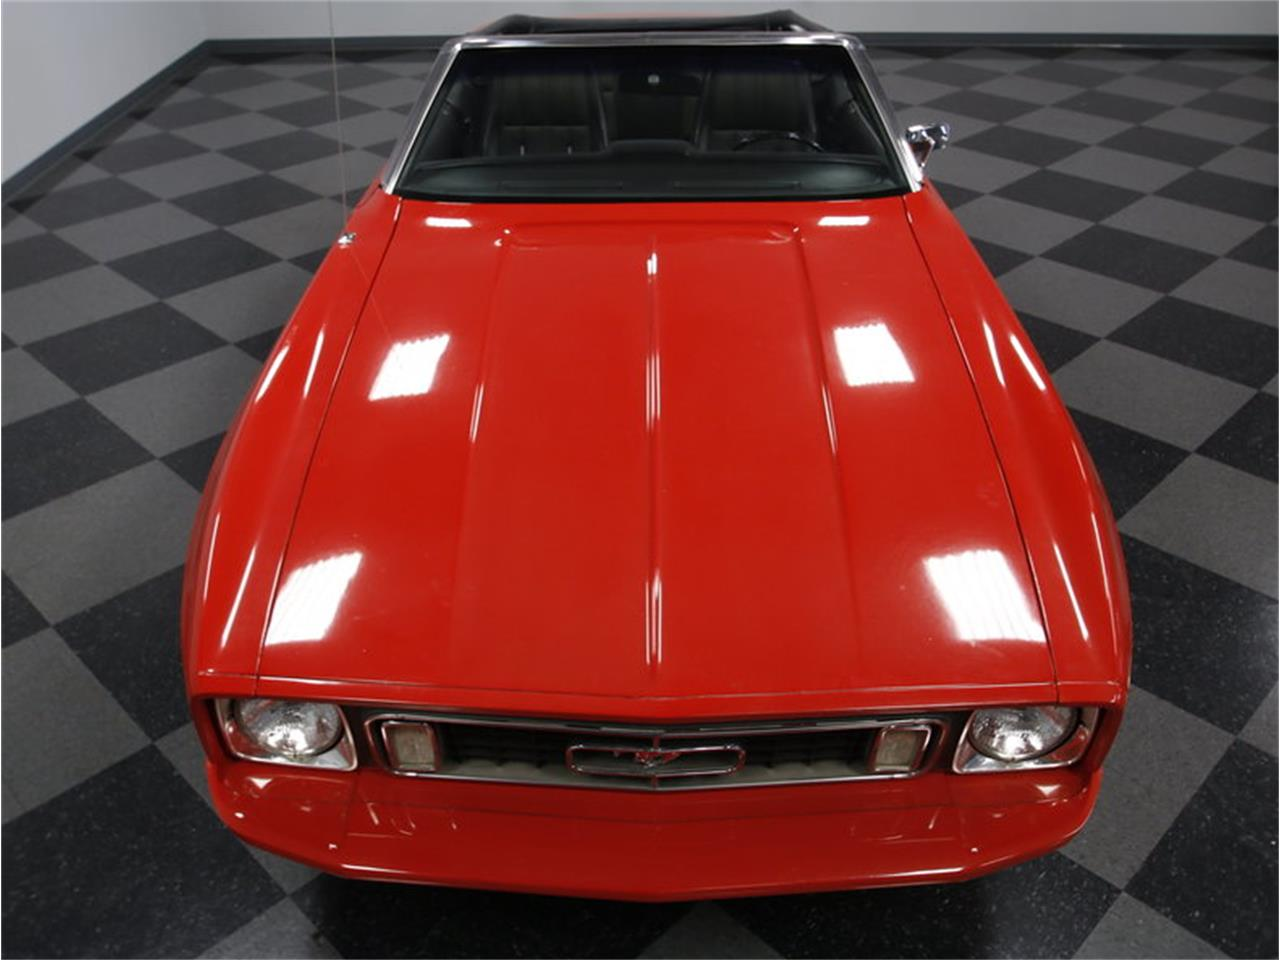 Large Picture of '73 Ford Mustang 351 Cobra Jet located in North Carolina - $24,995.00 - KISW